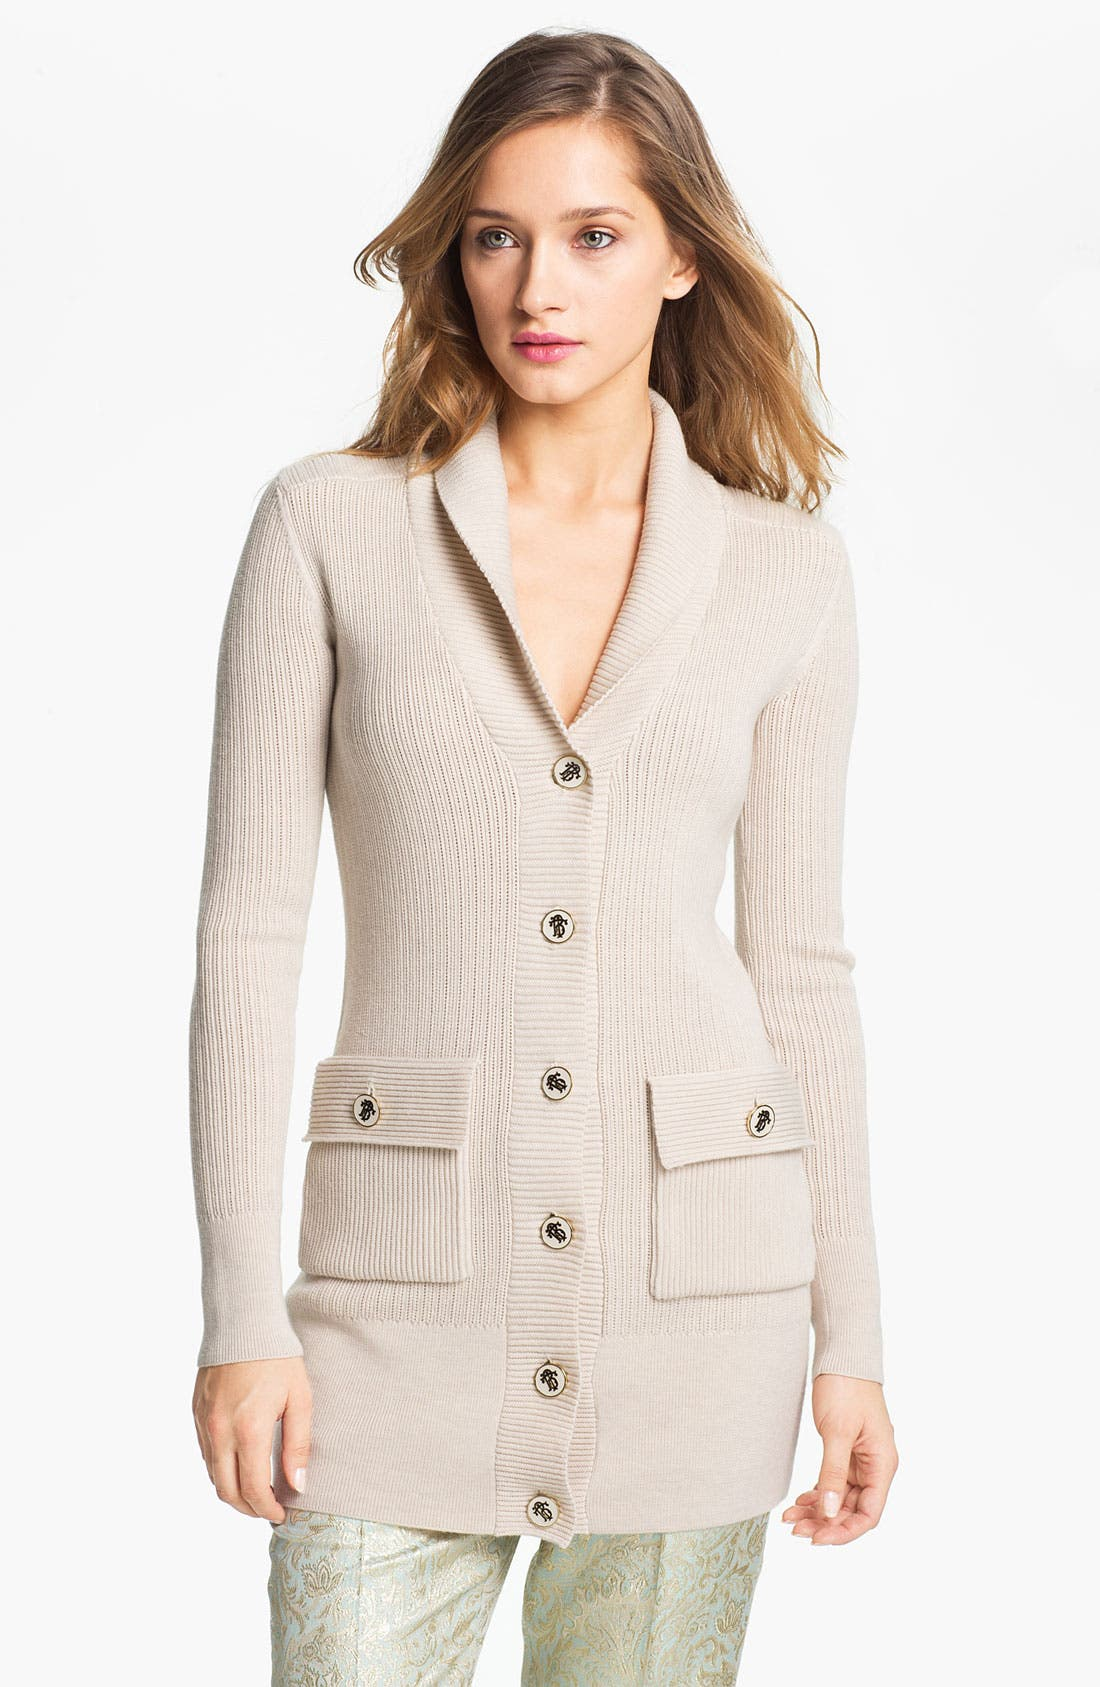 Alternate Image 1 Selected - Tory Burch 'Tania' Cardigan